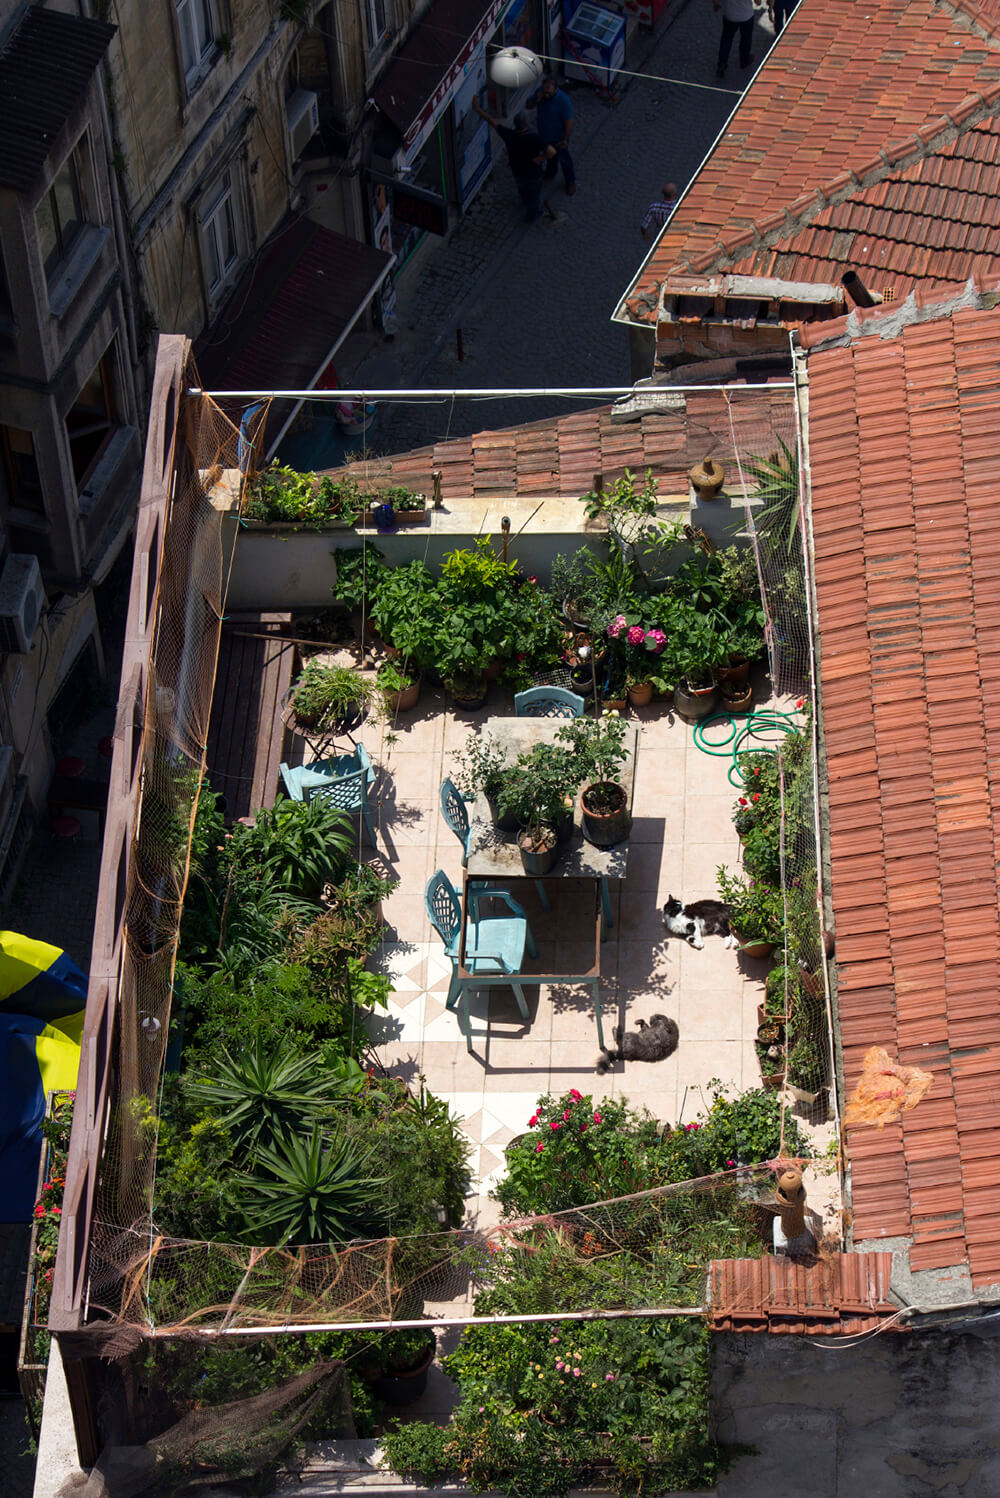 A rooftop patio viewed from above, showing the sheer amount of planters and ornamental trees occupying the majority of the space.